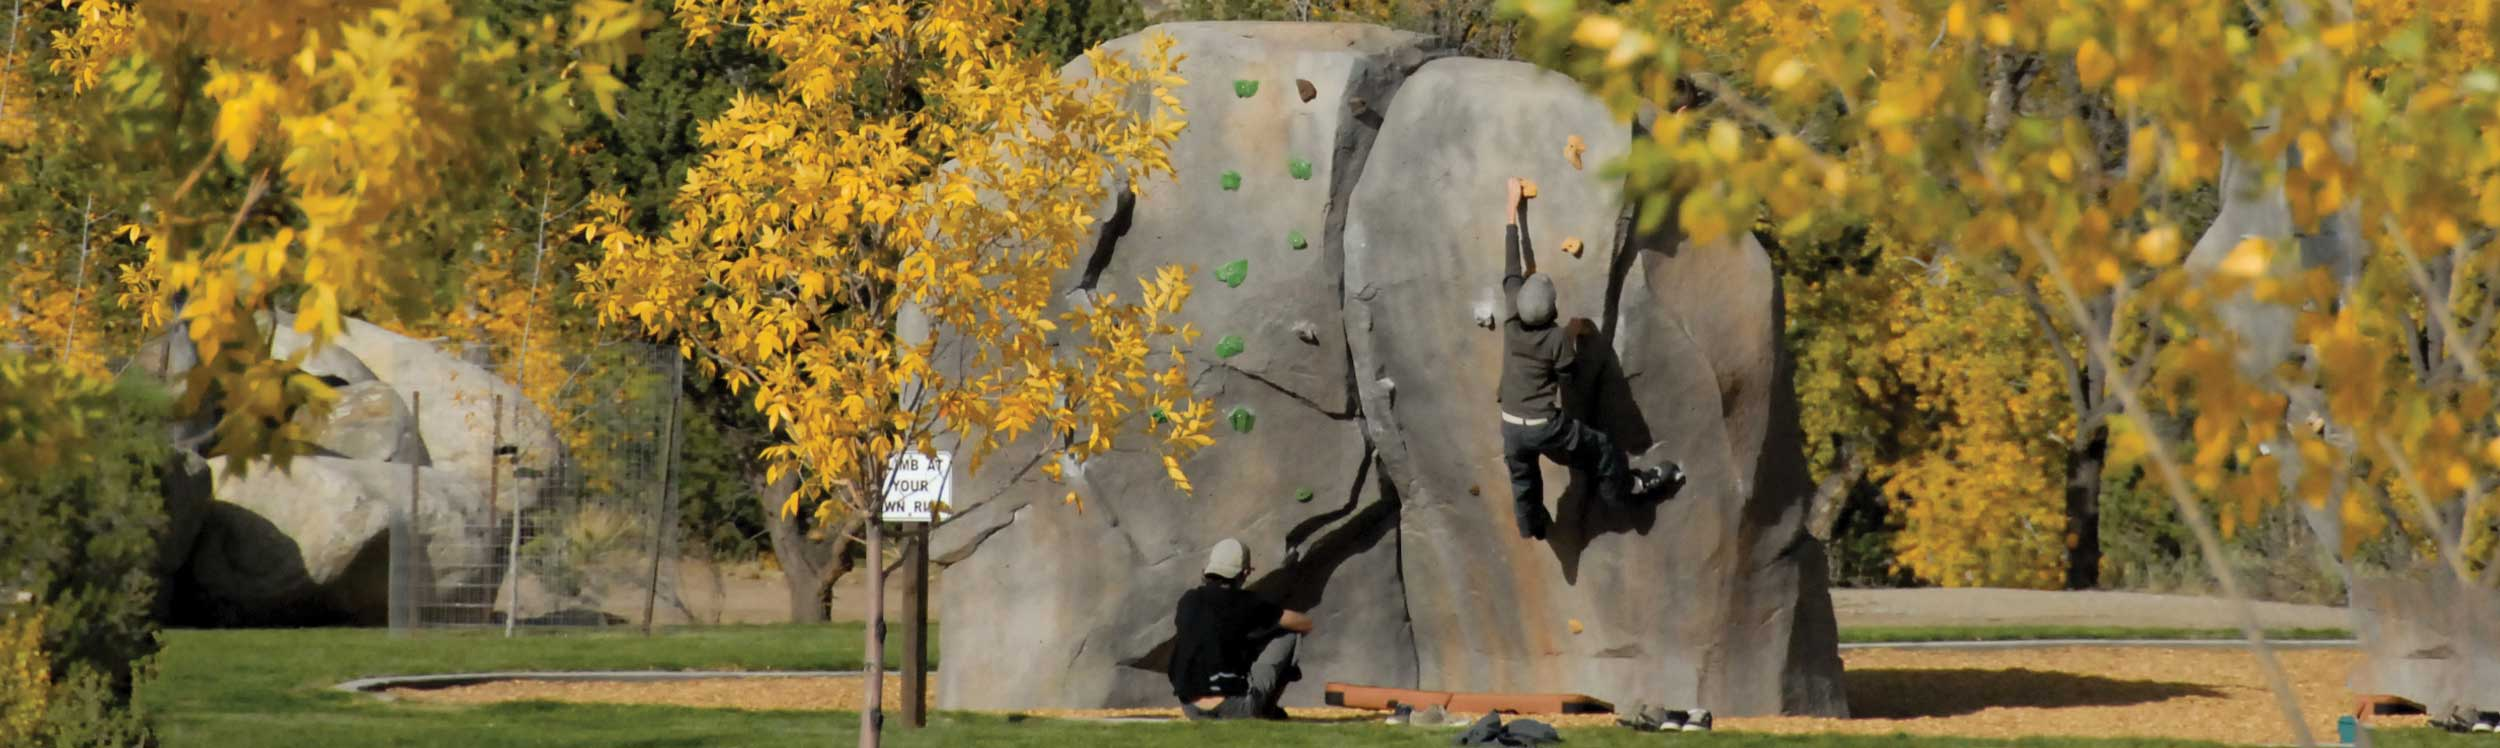 Rock Climbing Sculpture Park Equipment